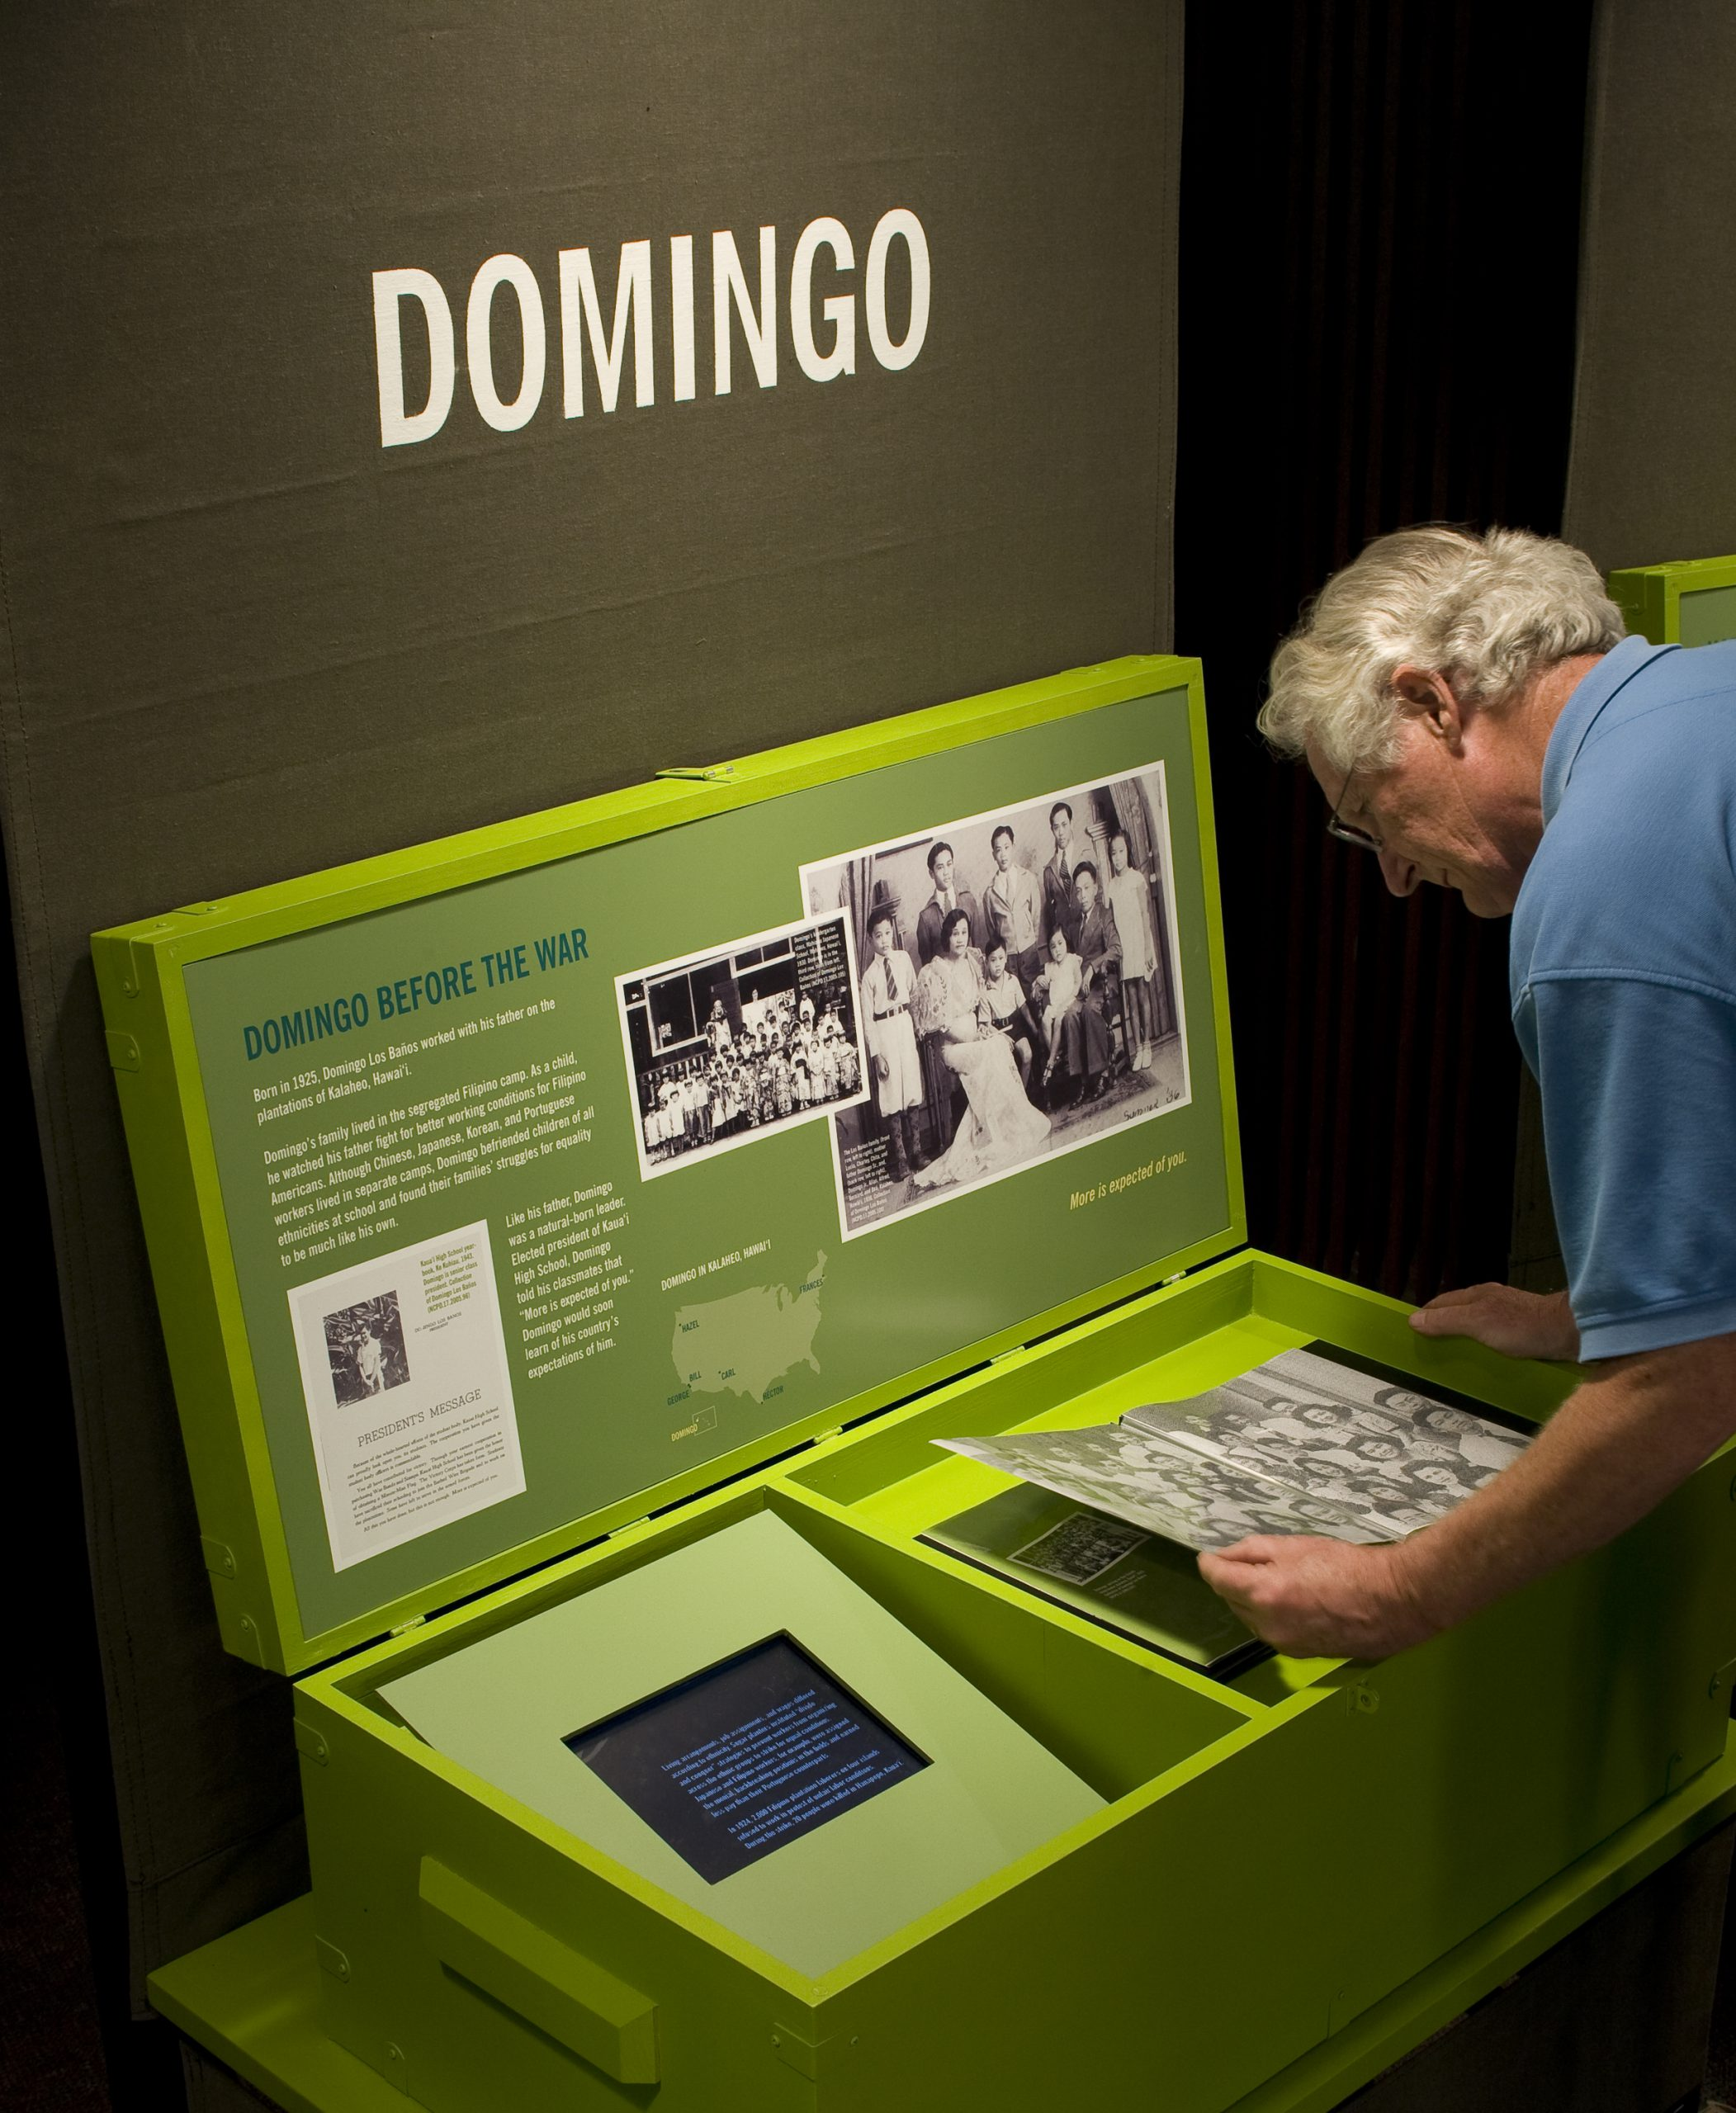 Project image 2 for Fighting for Democracy Traveling Exhibit, Japanese American National Museum